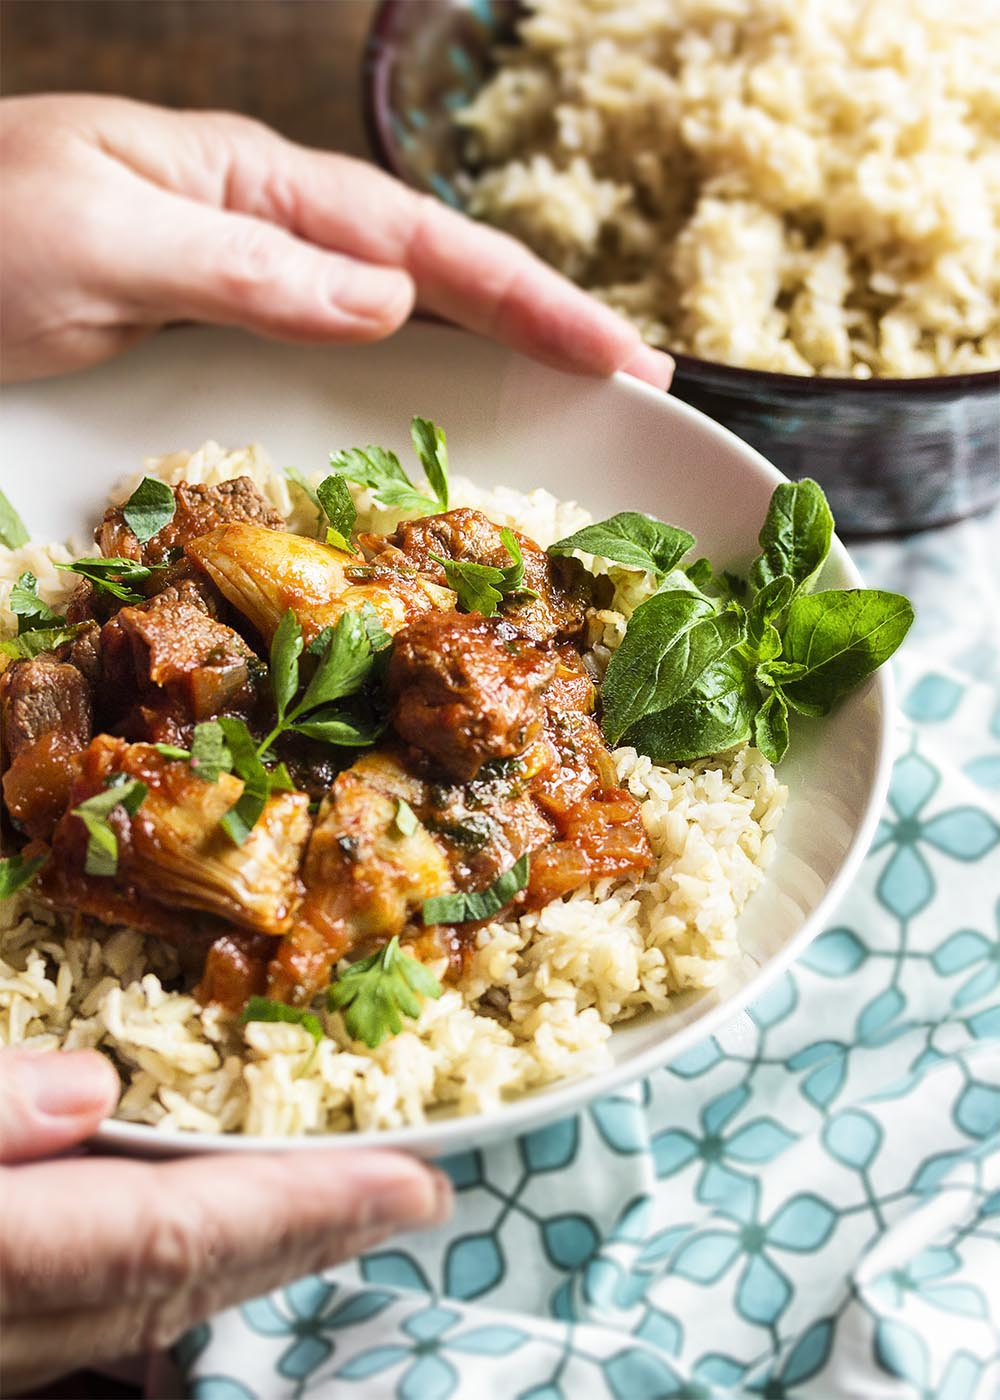 Hands holding up a bowl of brown rice topped with lamb and artichoke stew. Fresh parsley and oregano scattered over the top.